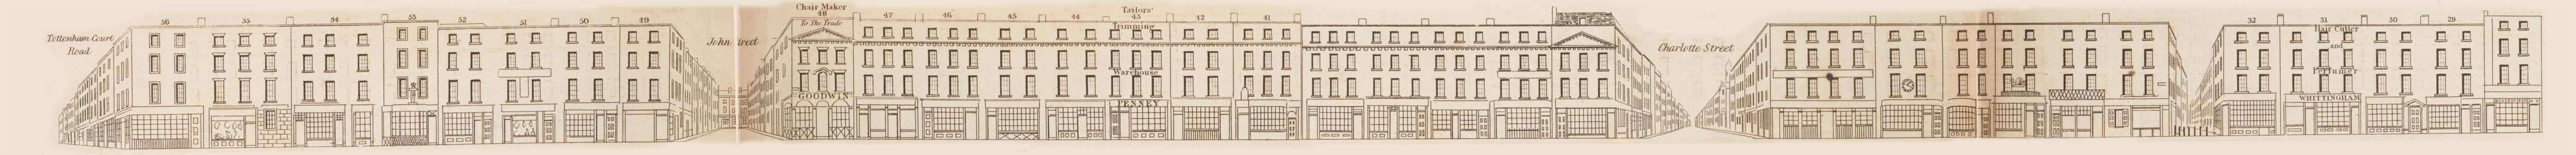 map - Tallis's London street views : No. 54. Goodge Street, Tottenham Court Road (south)